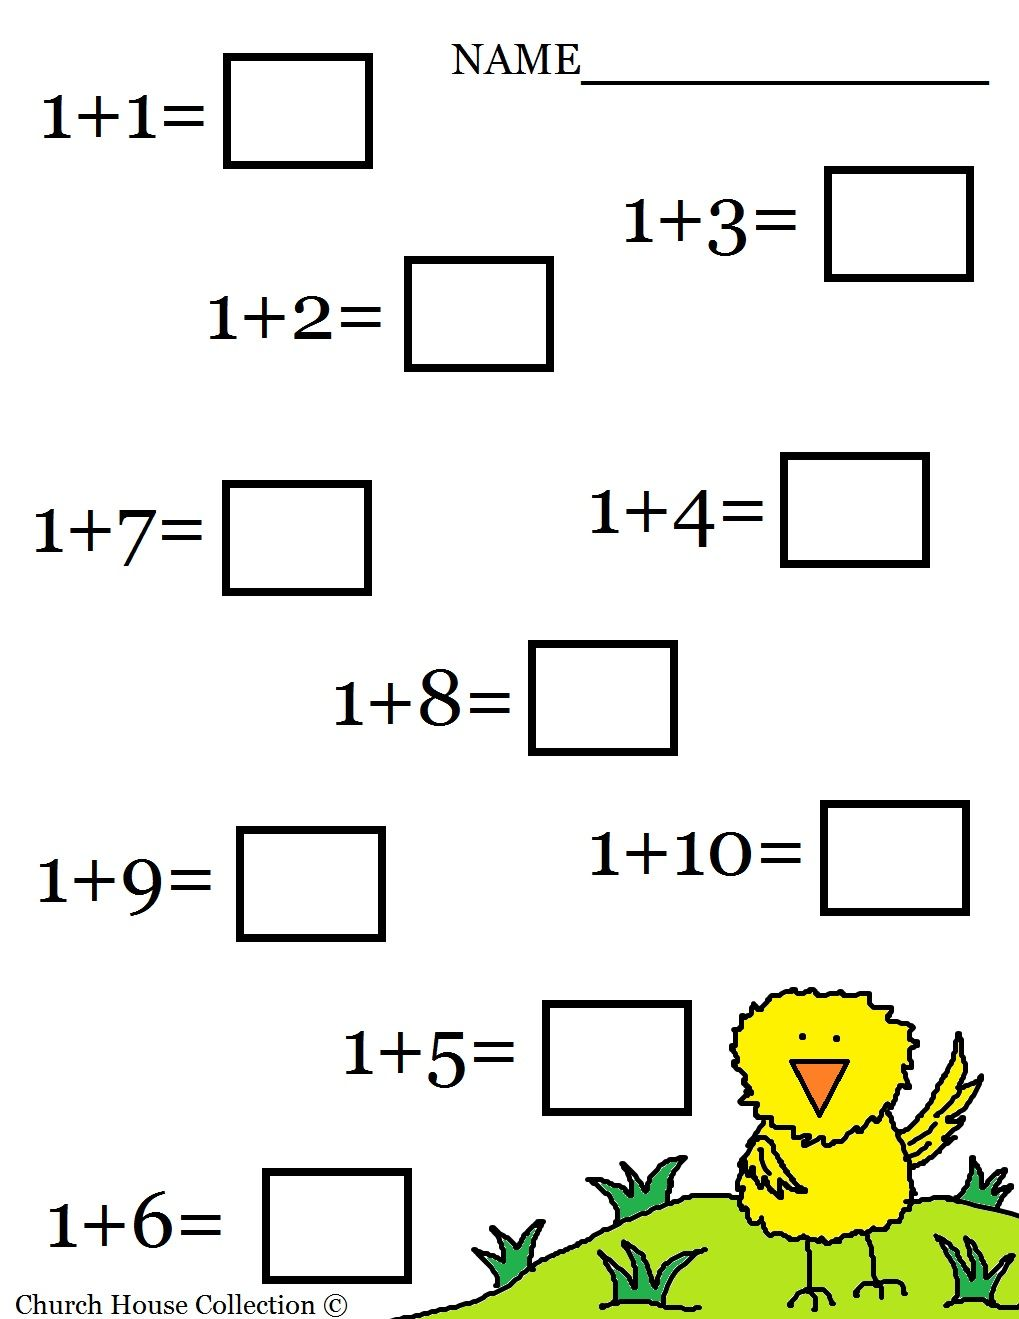 Aldiablosus  Pleasing  Images About Worksheets  Math On Pinterest  Math Sheets  With Fascinating  Images About Worksheets  Math On Pinterest  Math Sheets Math Worksheets For Kindergarten And Simple Addition With Awesome Short Vowel O Worksheet Also Listening Activity Worksheets In Addition Finding The Area Worksheet And Find The Noun In The Sentence Worksheet As Well As Reading Bar Charts Worksheet Additionally Year  Maths Revision Worksheets From Pinterestcom With Aldiablosus  Fascinating  Images About Worksheets  Math On Pinterest  Math Sheets  With Awesome  Images About Worksheets  Math On Pinterest  Math Sheets Math Worksheets For Kindergarten And Simple Addition And Pleasing Short Vowel O Worksheet Also Listening Activity Worksheets In Addition Finding The Area Worksheet From Pinterestcom